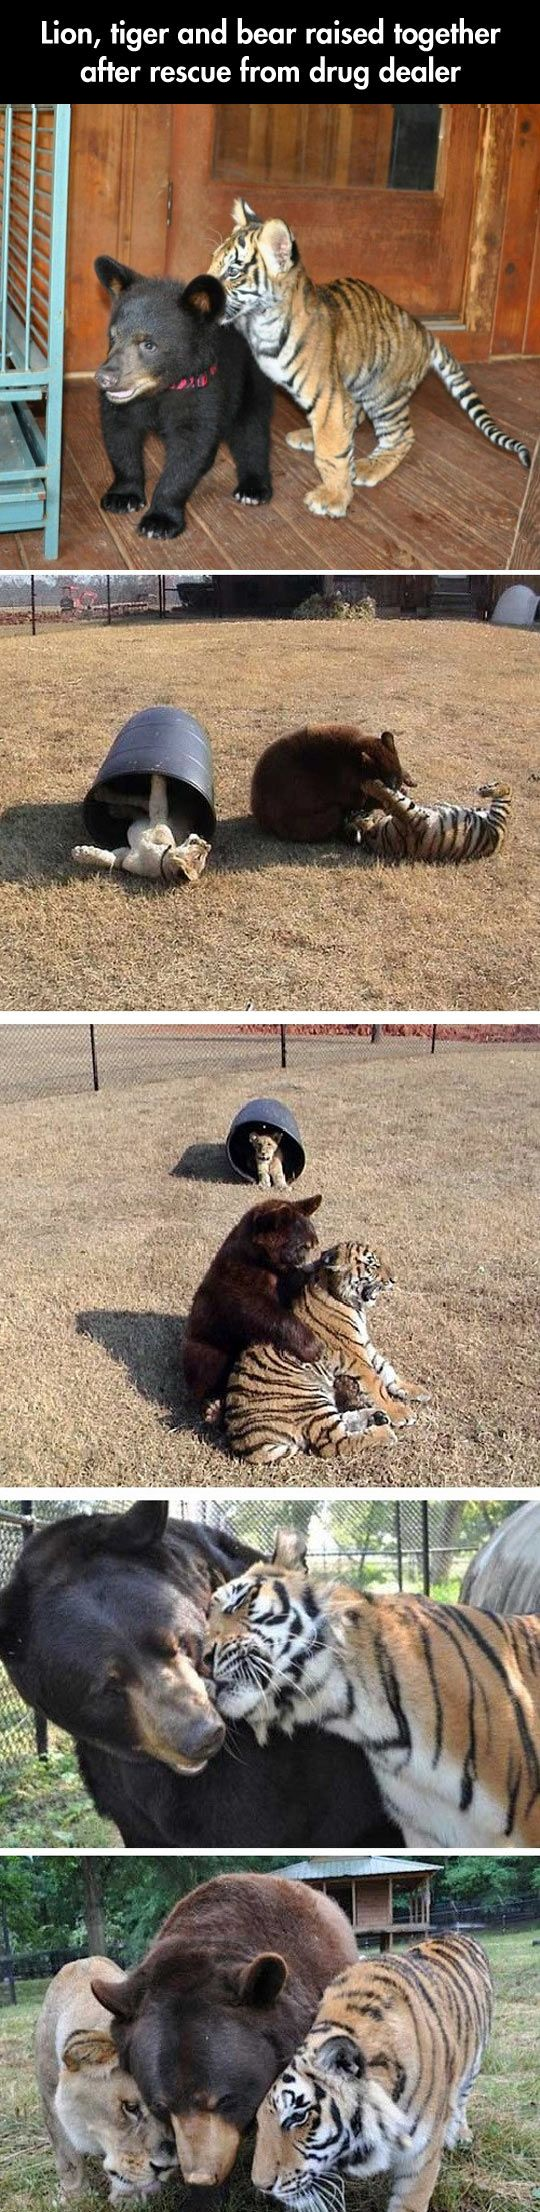 Because while some people are assholes, most are not, and animals tend to have more love than most humans. So glad to see a happy ending for these animals.: Drug Dealer, Animals, Bears Oh, Best Friends, Tigers Bears, Bear Raised, Tiger Bear